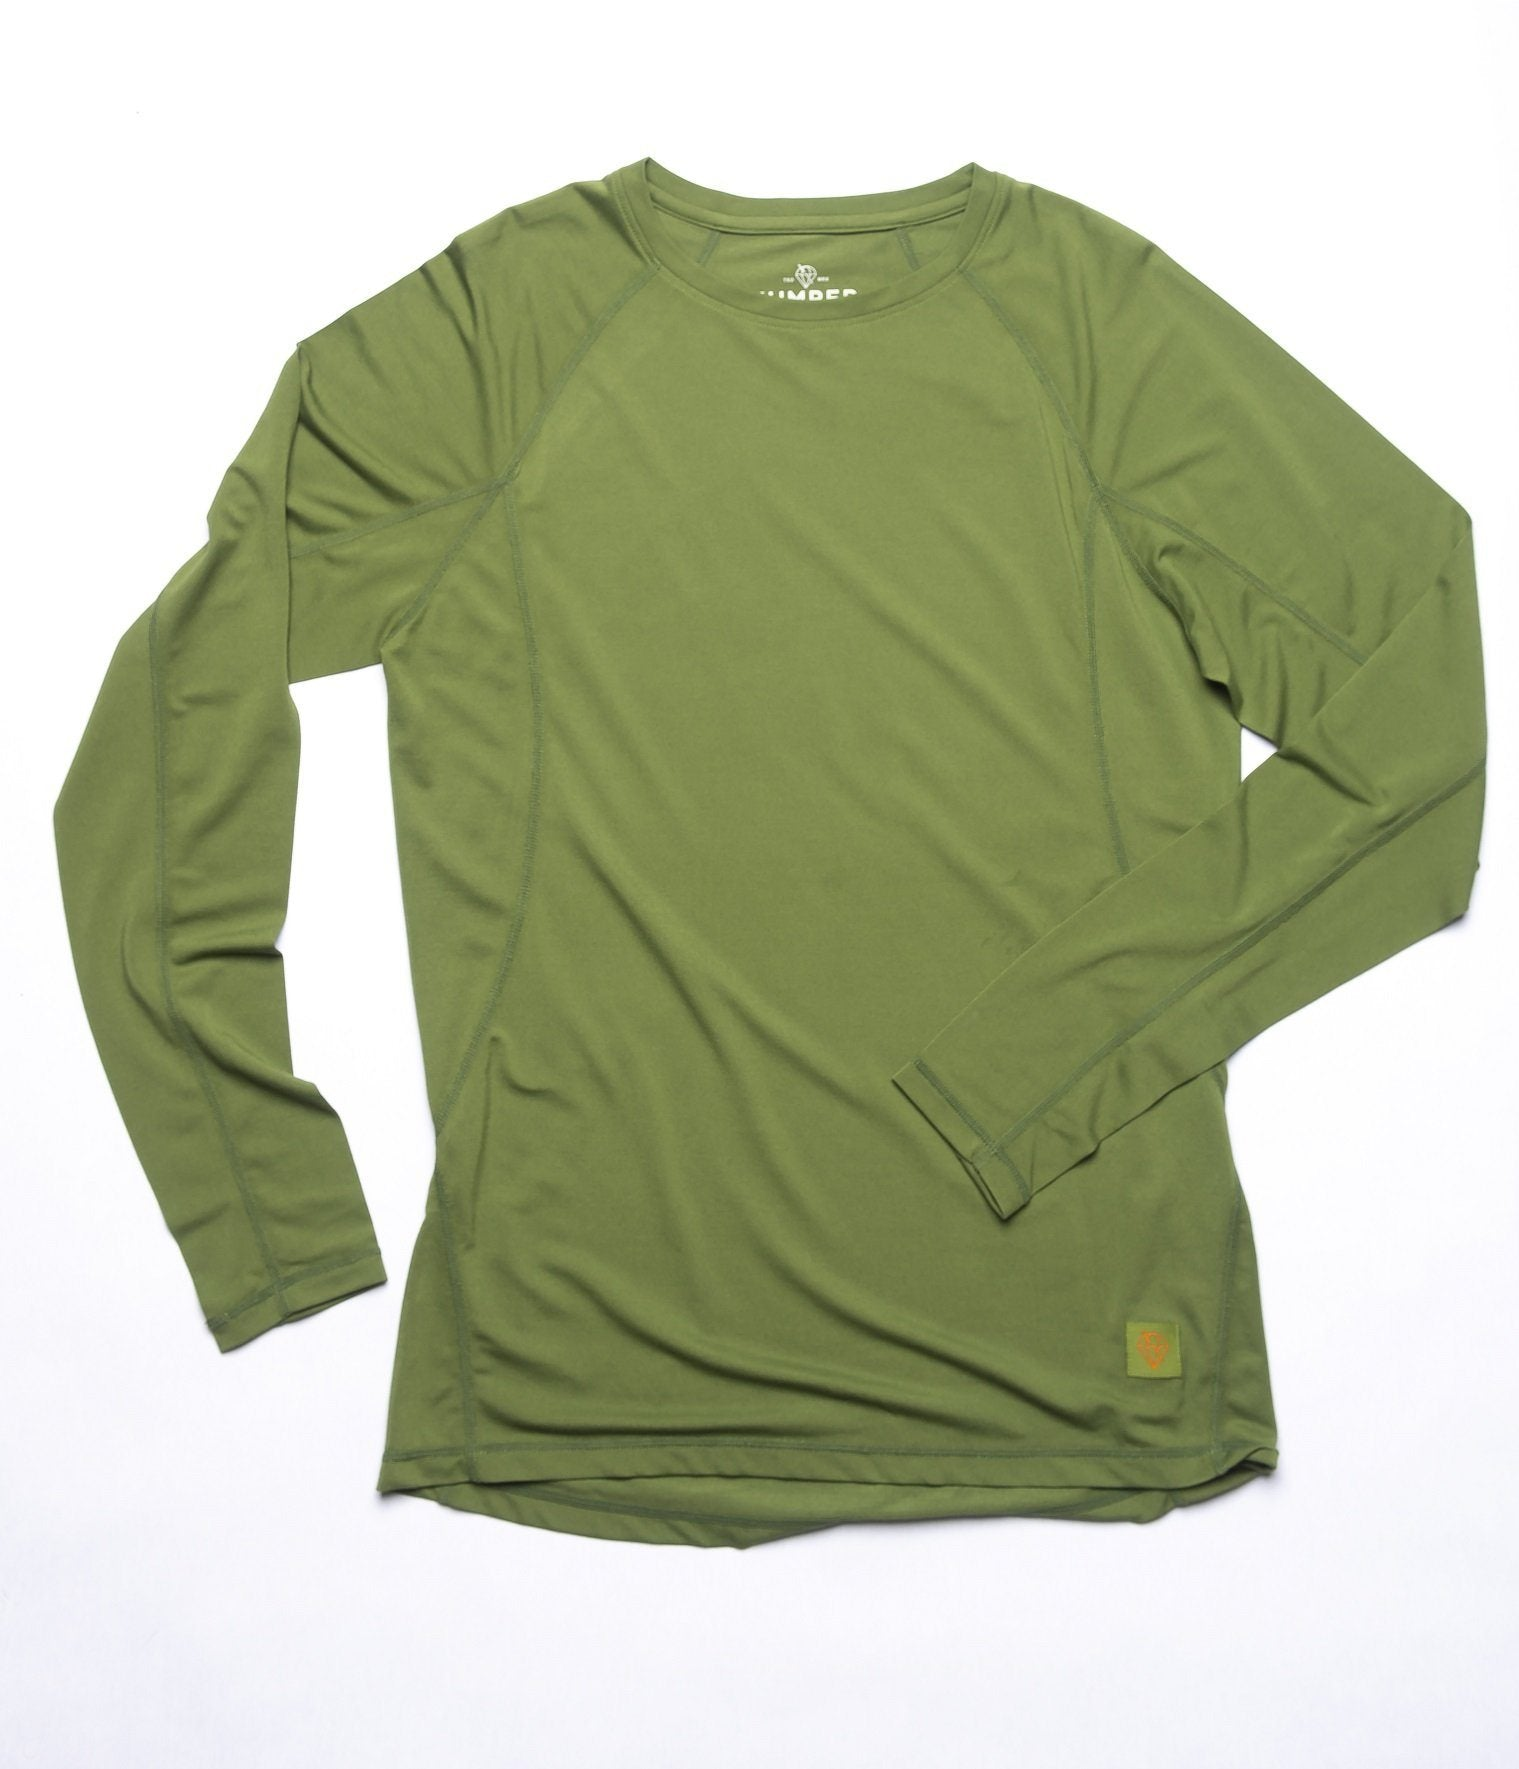 Shirts - ULTRALAYER Active Wear